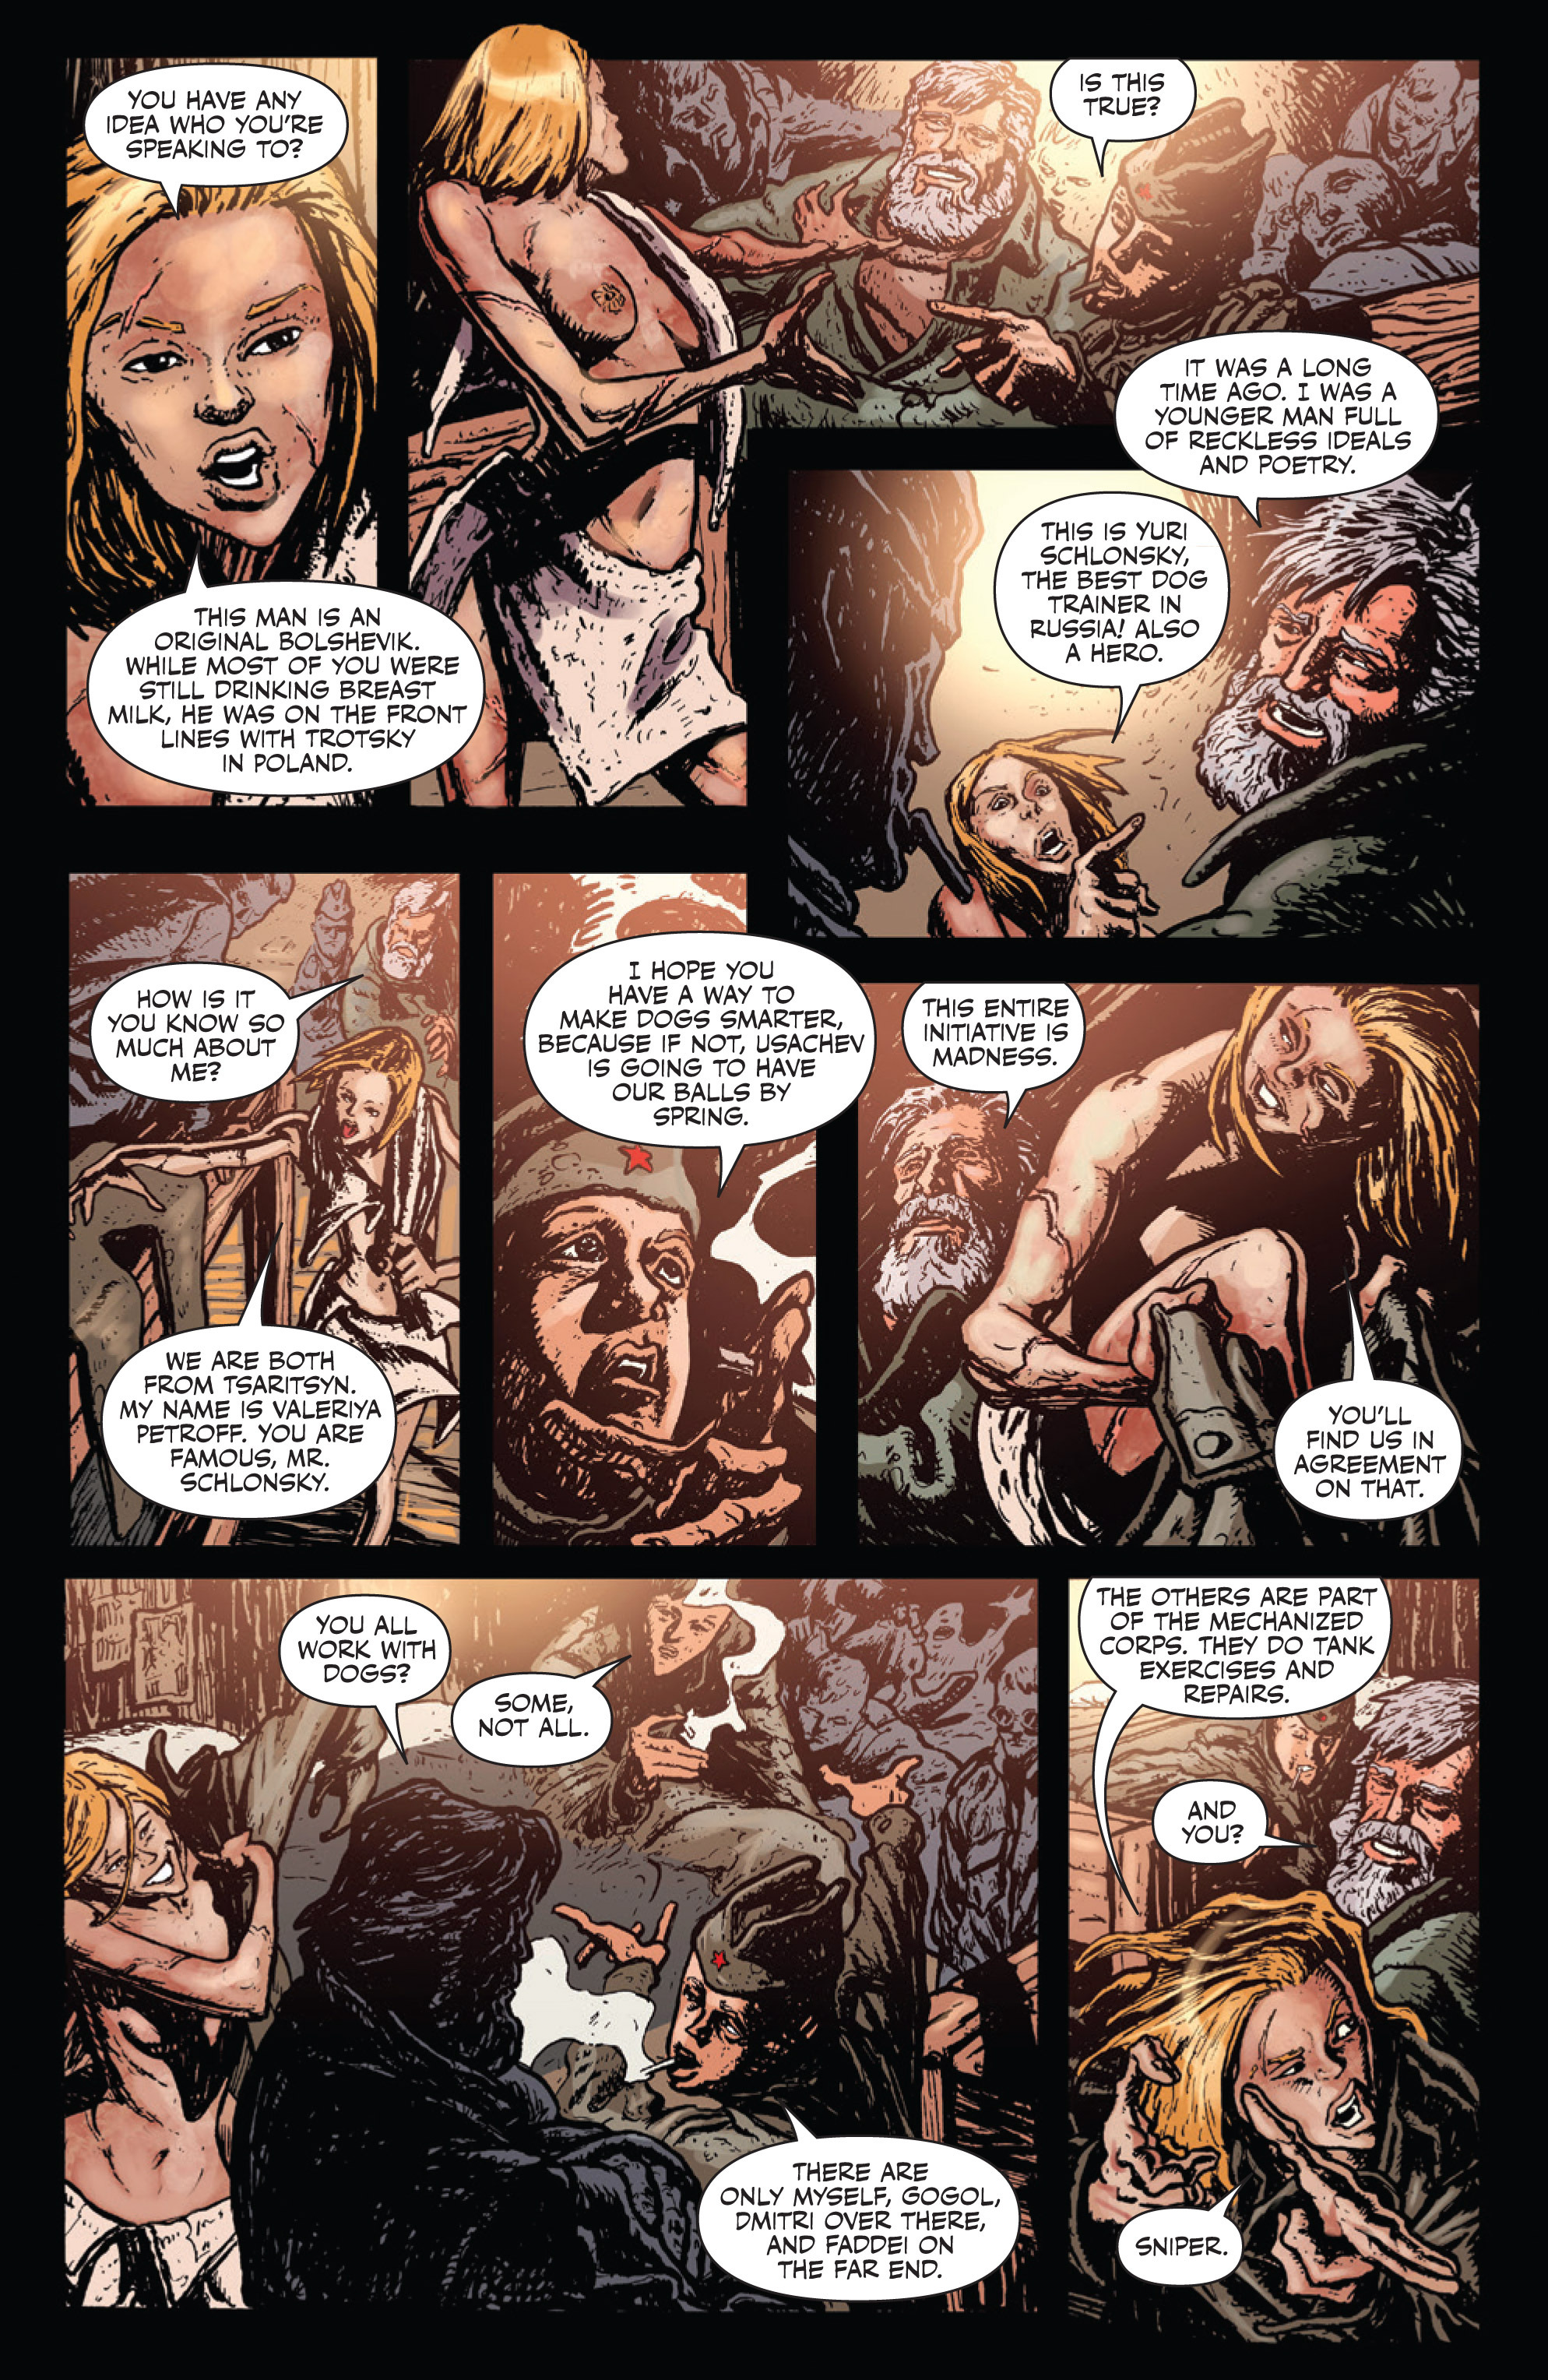 Read online Sex and Violence Vol. 2 comic -  Issue # Full - 24